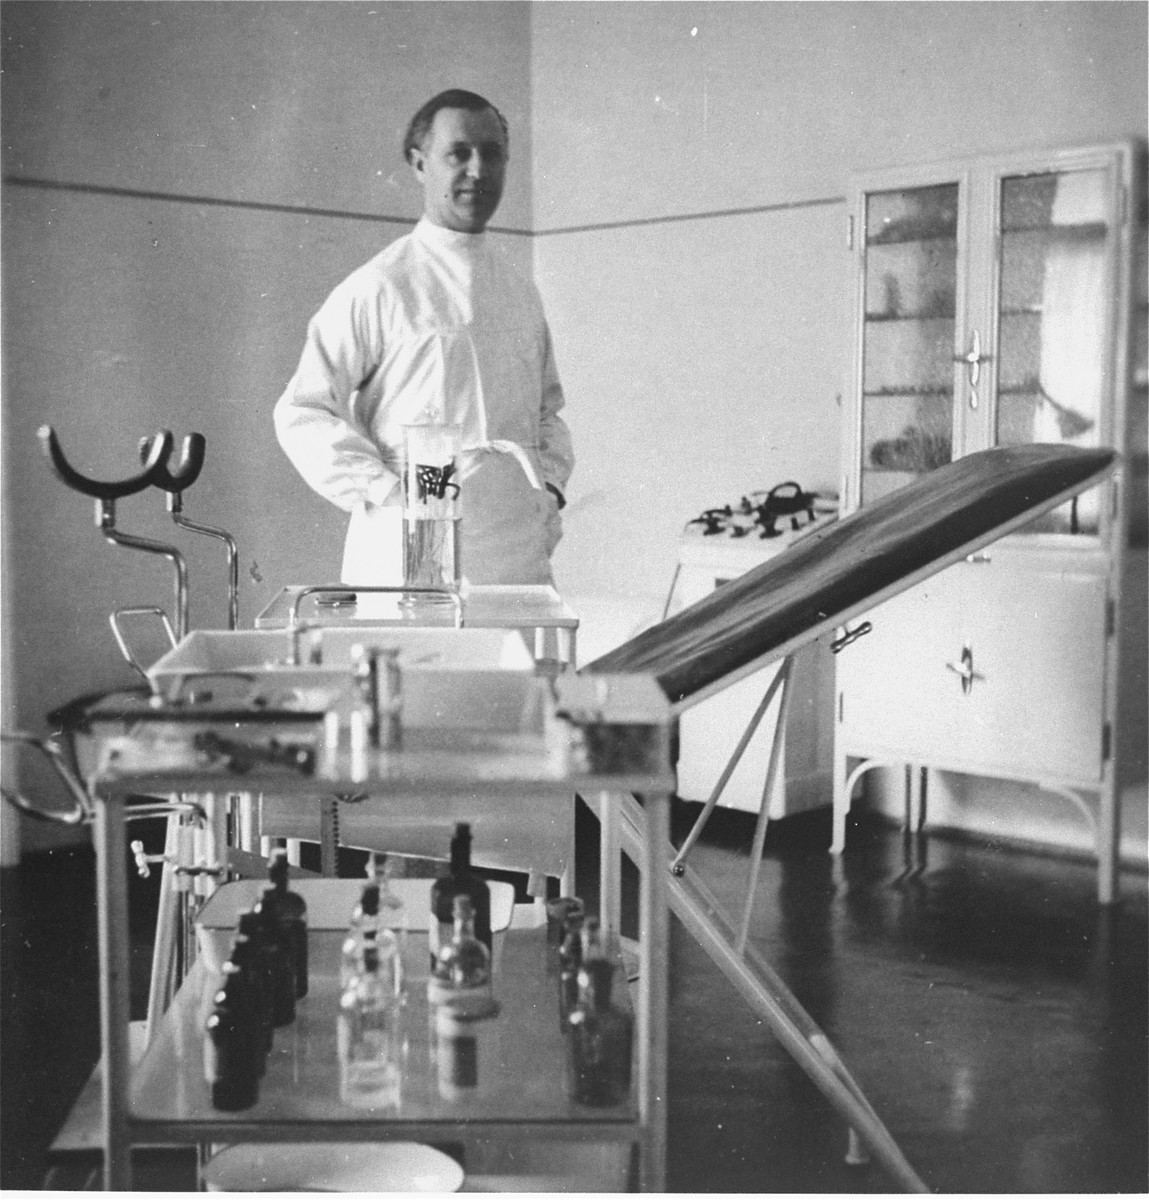 The Jewish obstetrician, Dr. László Halmos, stands behind the examination table in his office on Vodna Street in Kosice.